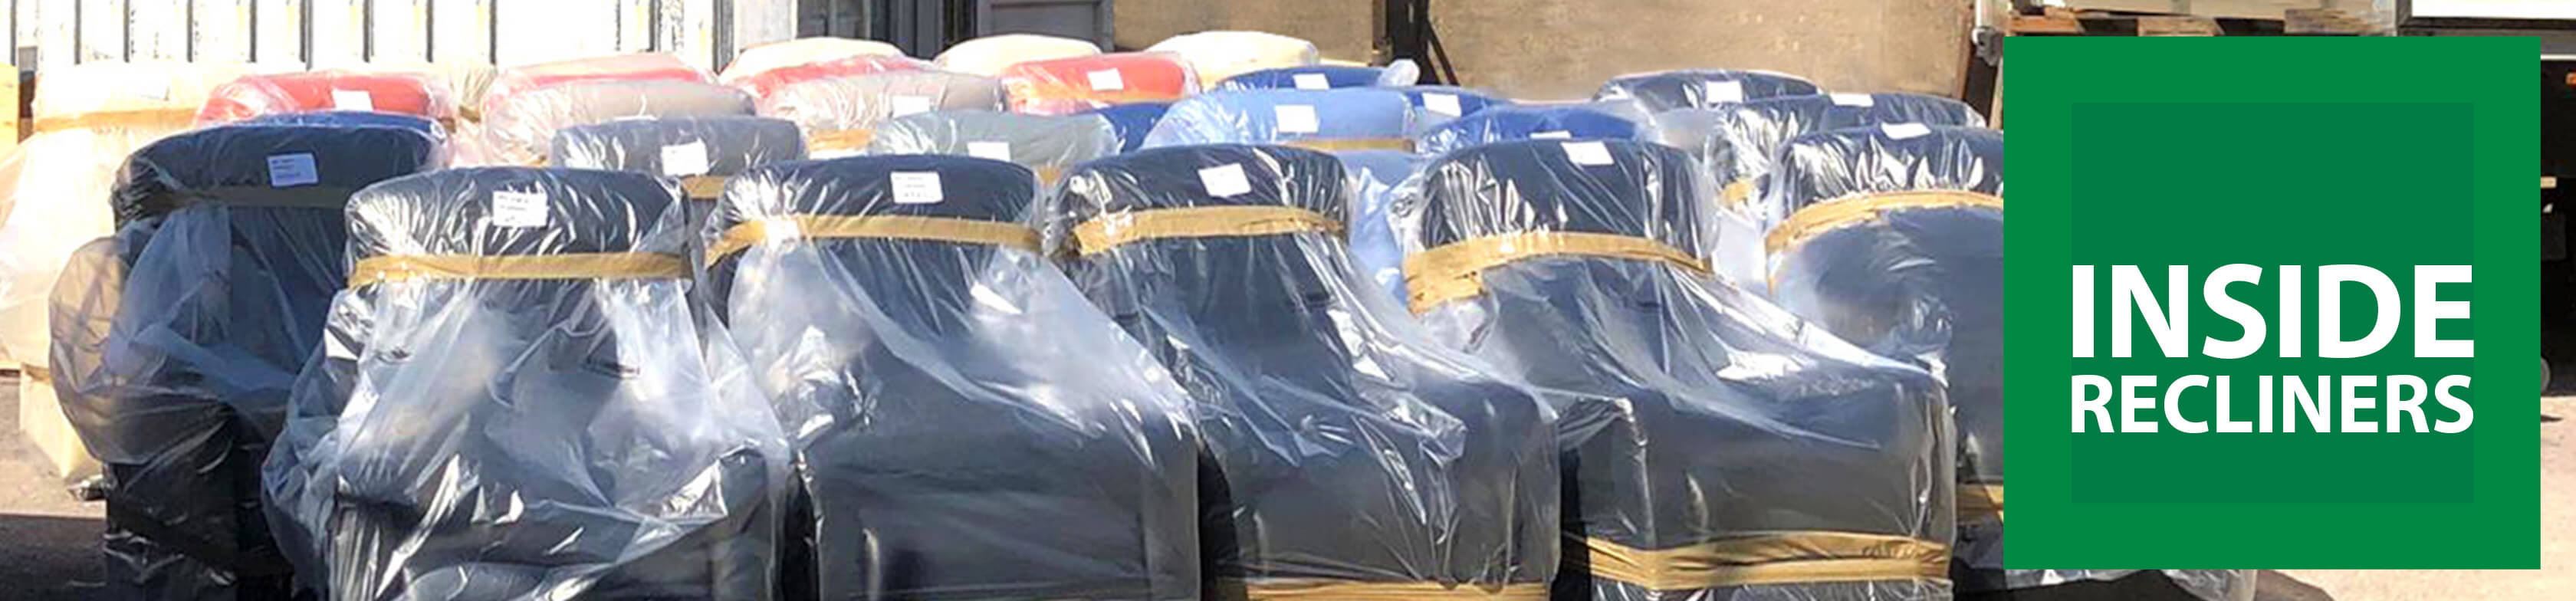 Recliners Continues to Manufacture for NHS and Most Vulnerable During Covid-19 Pandemic